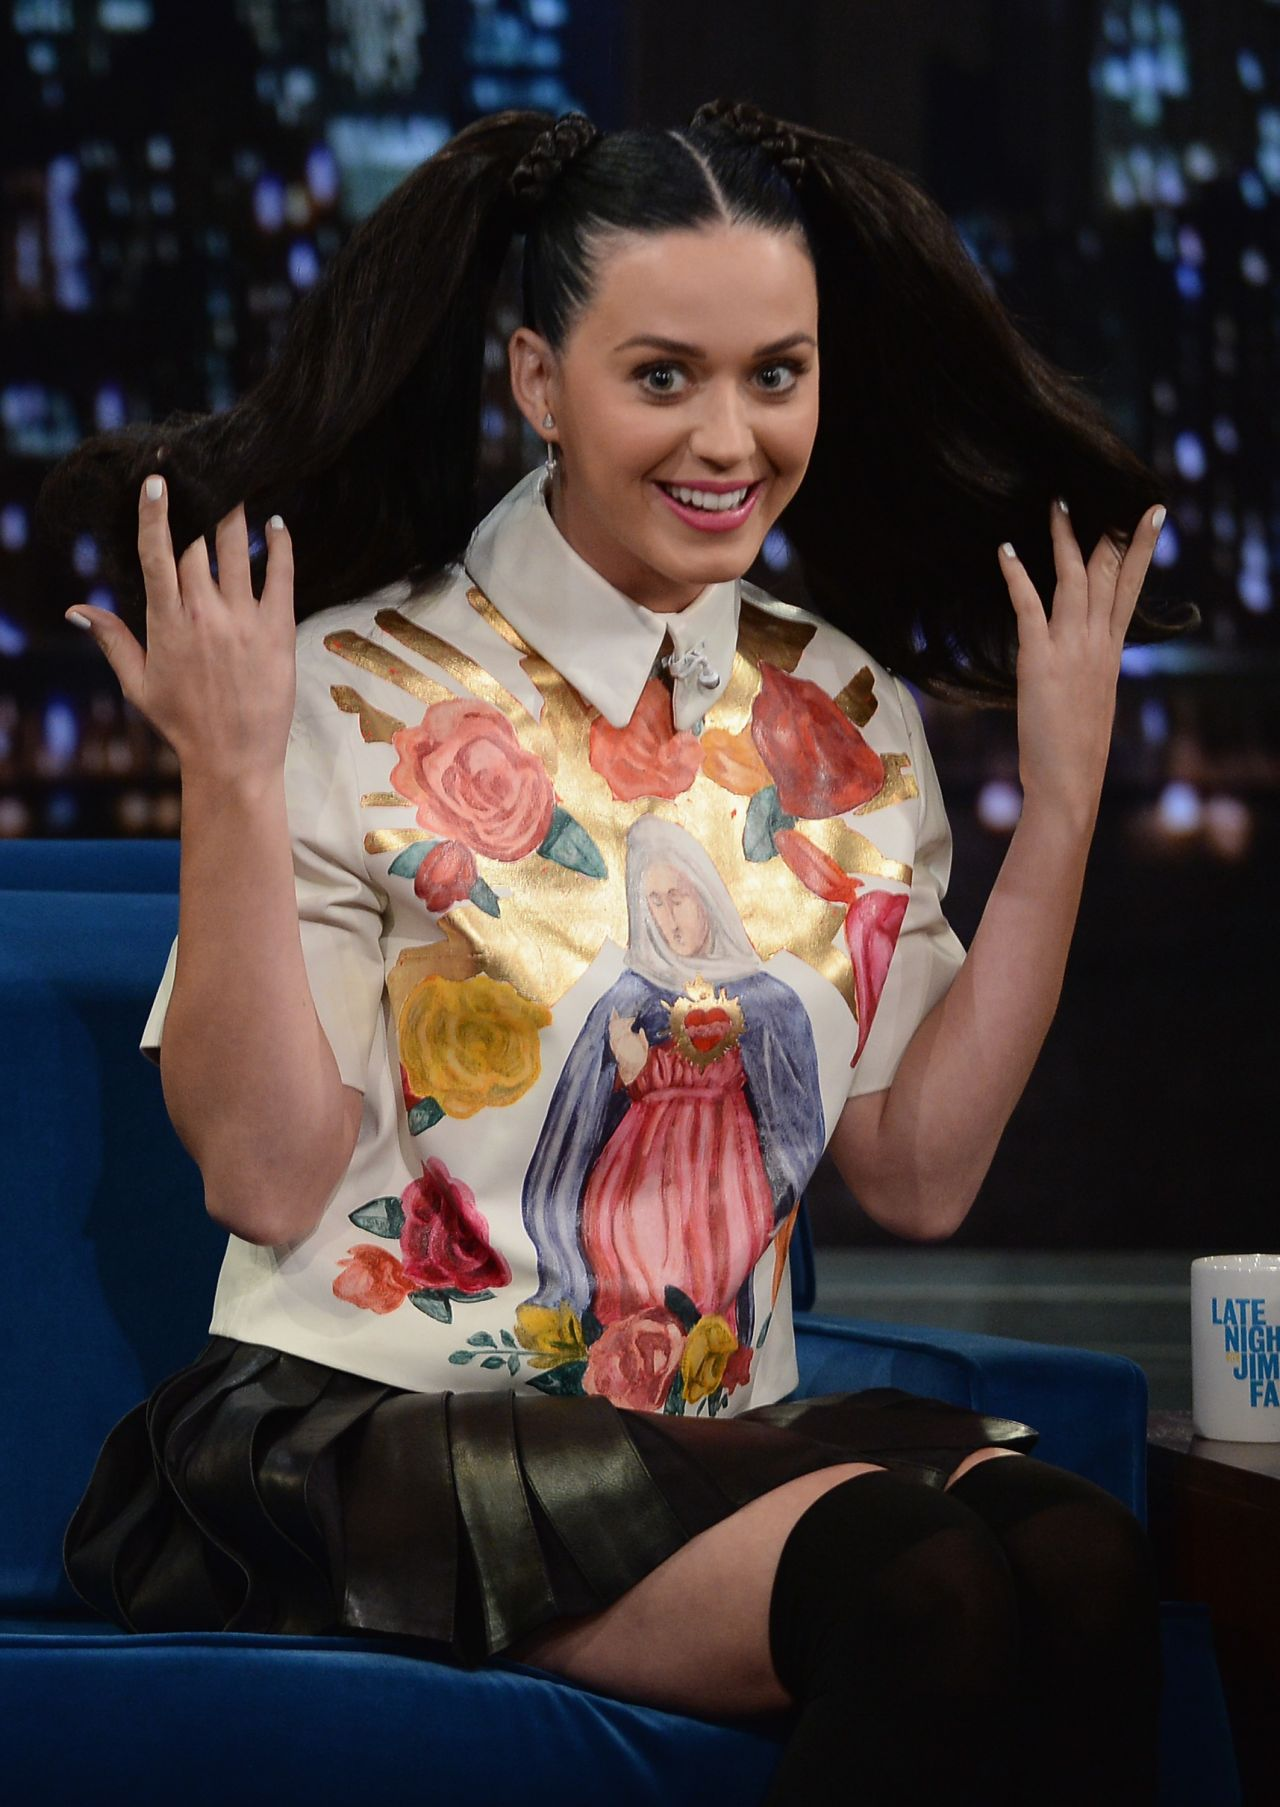 Katy Perry On Late Night With Jimmy Fallon